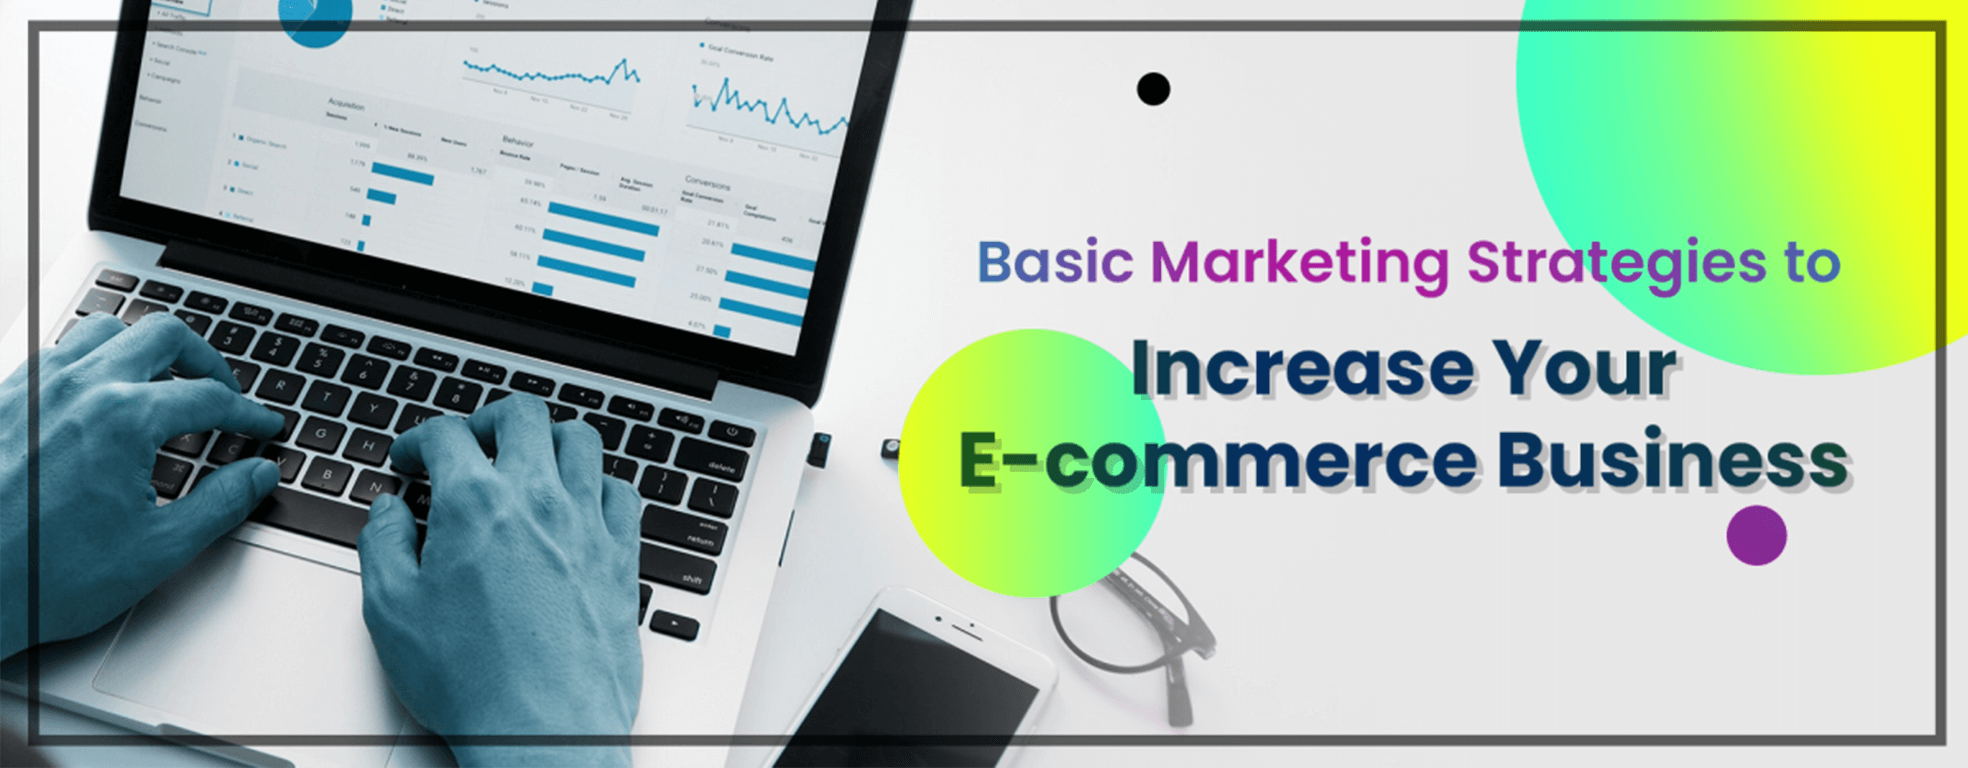 Basic Marketing Strategies to Increase Your E-commerce Business